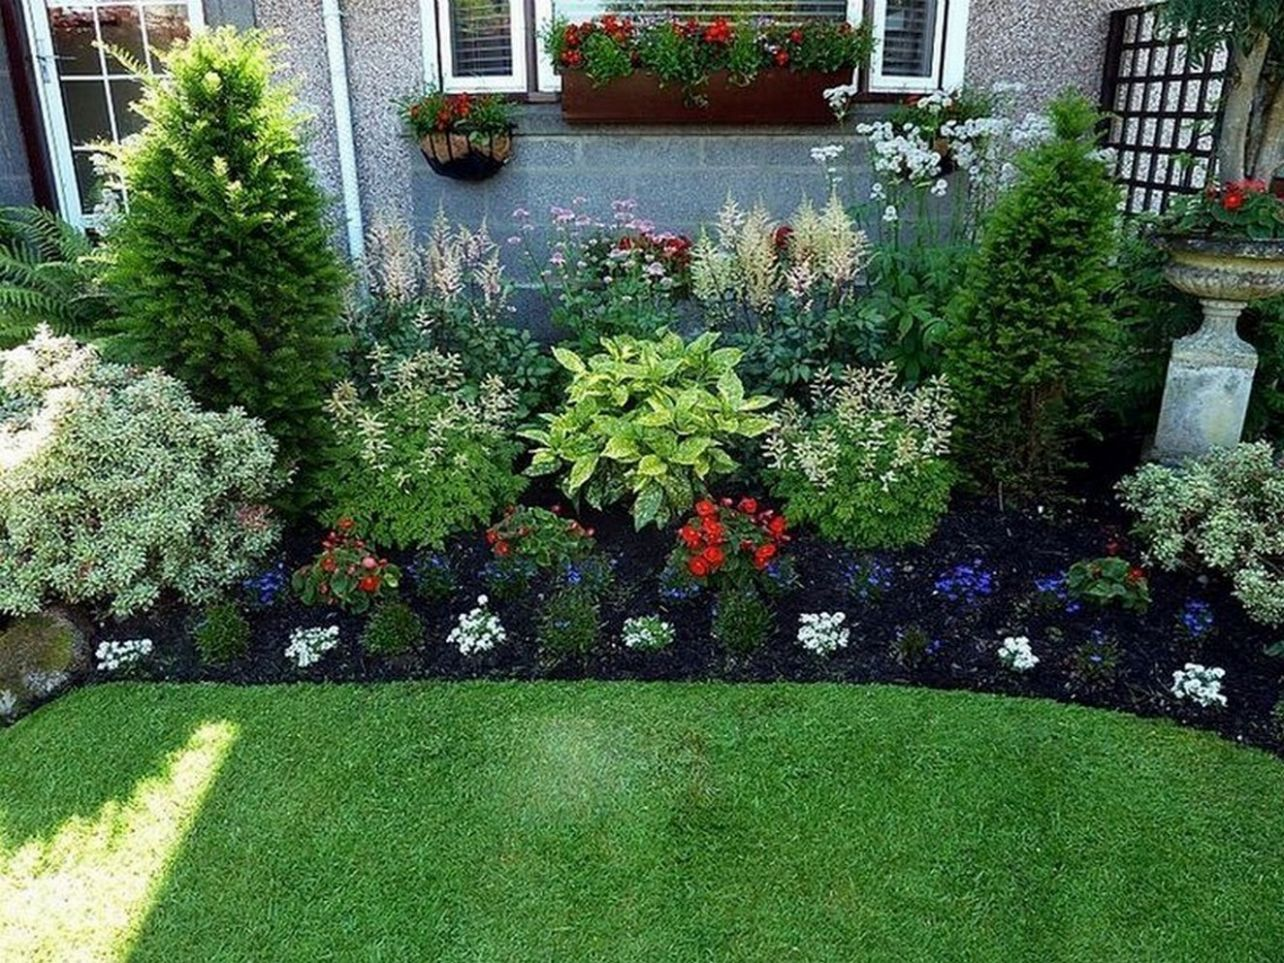 12 Simple and Beautiful Front Yard Landscaping Ideas on A Budget ..